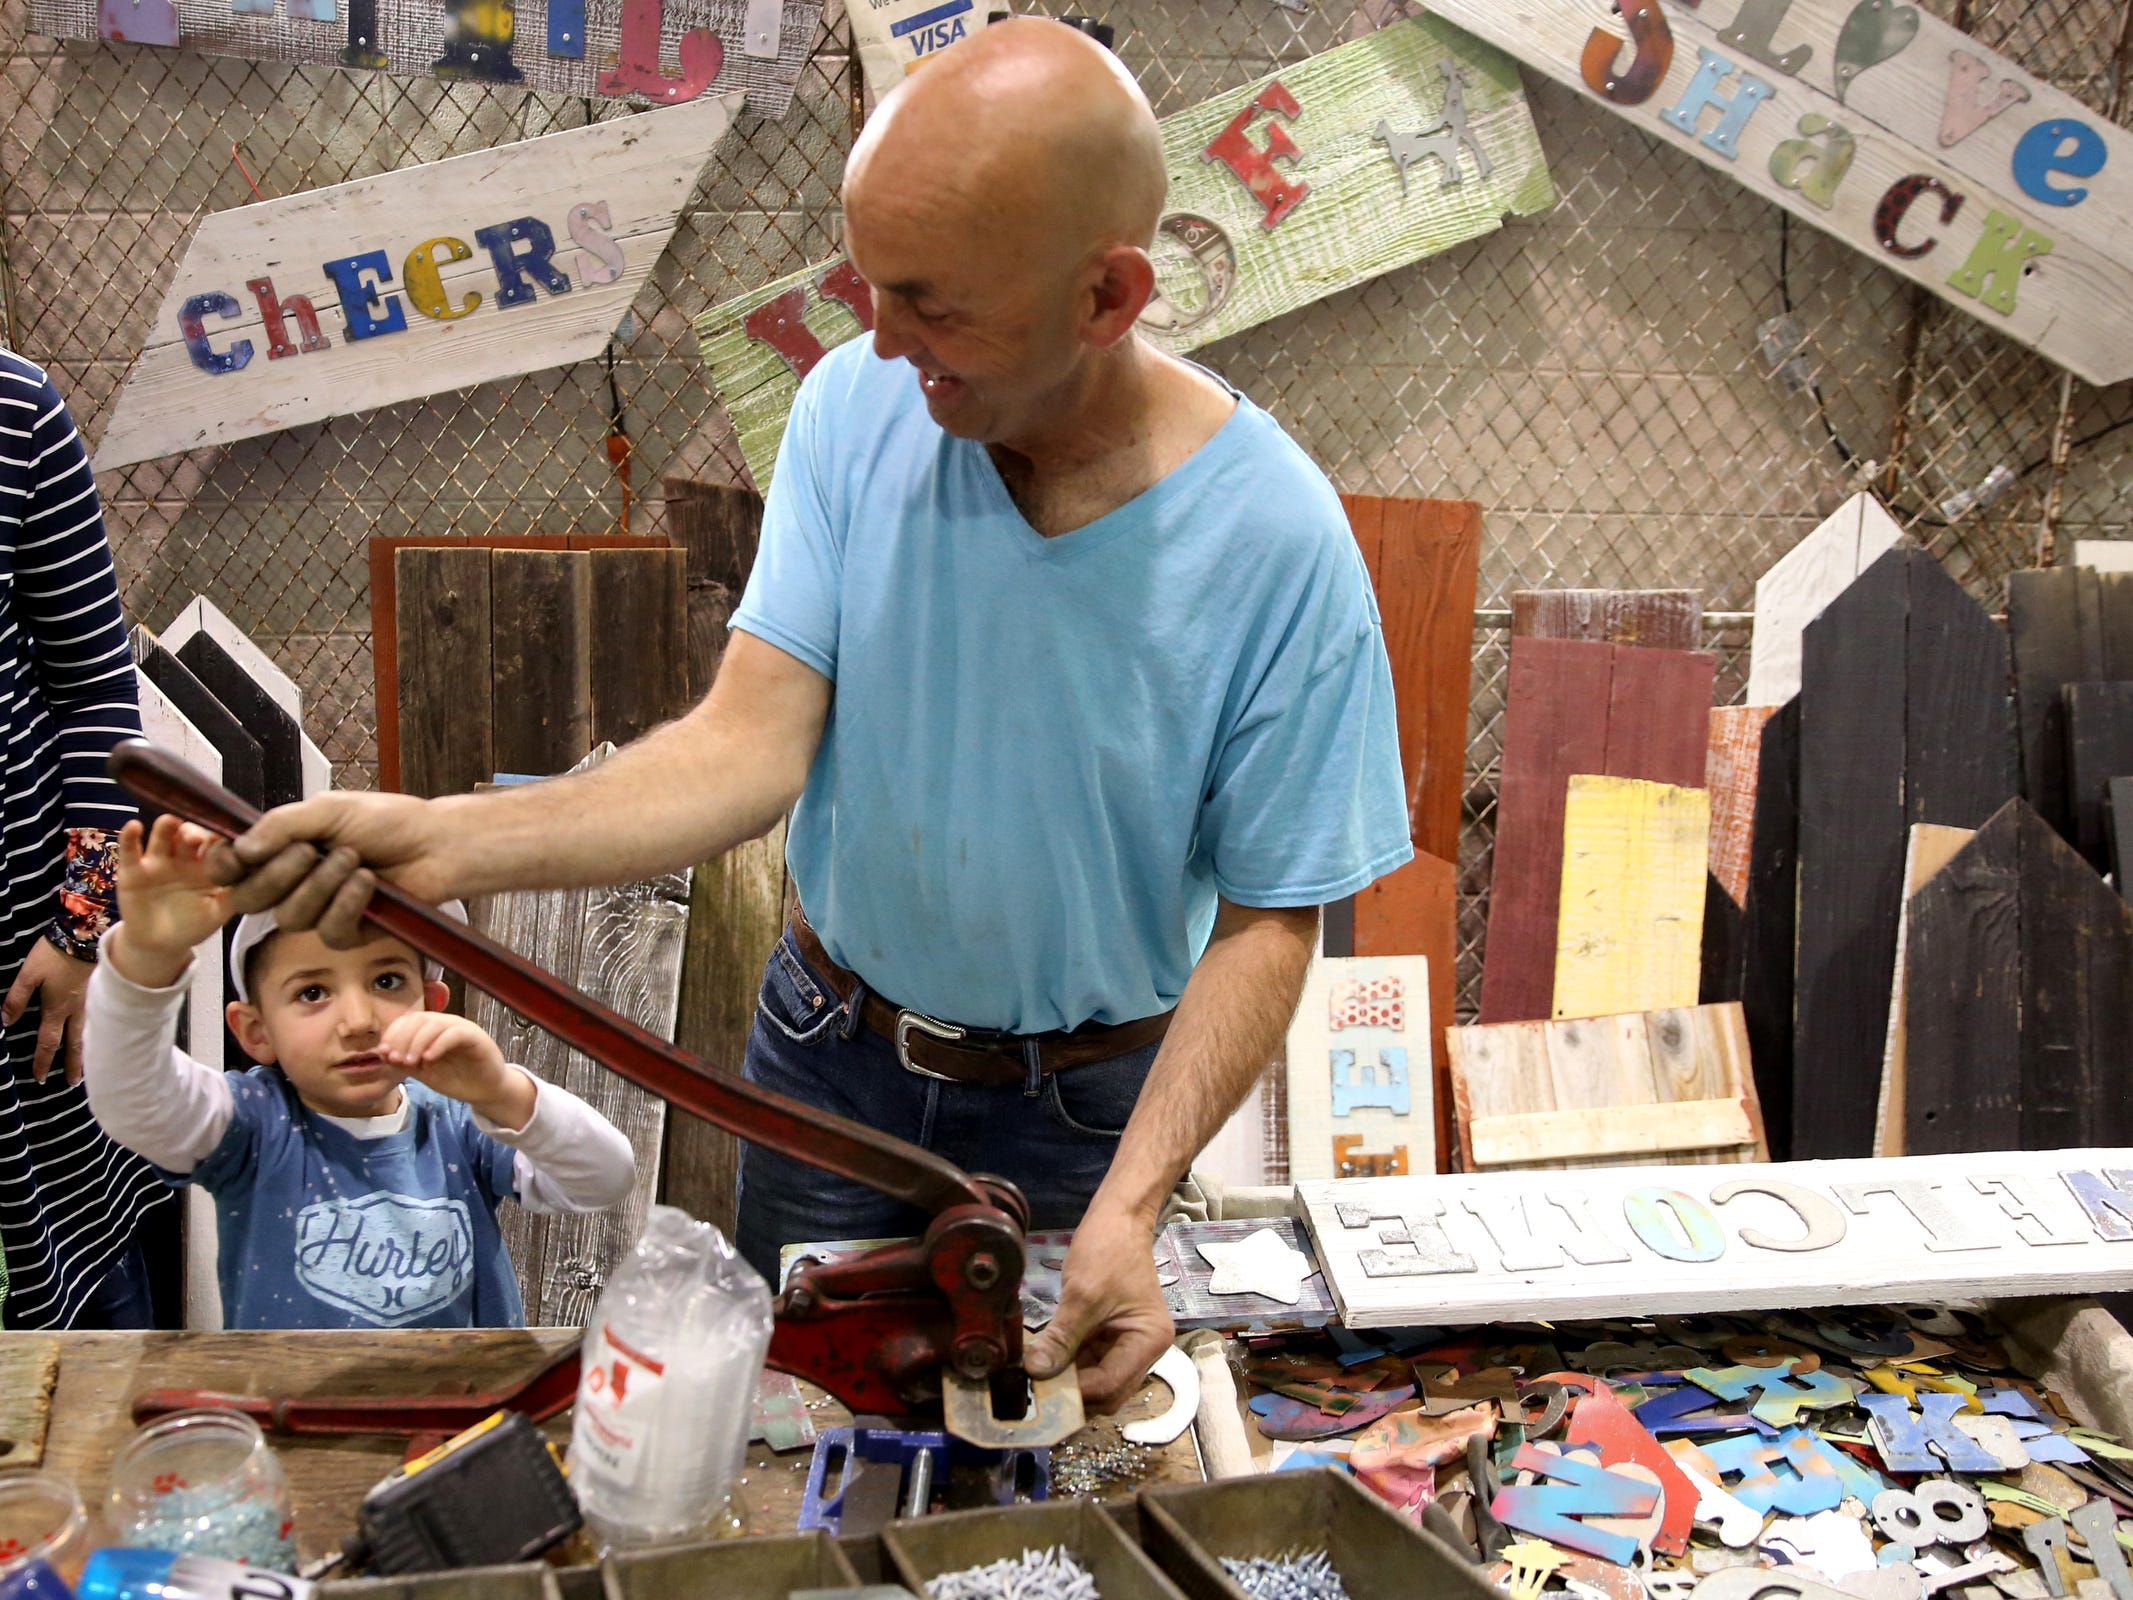 Garrett Maskal, 5, of Keizer, helps Fred Grandy punch a hole in a piece of metal for a custom sign during The Great Junk Hunt, a traveling vintage market, at the Oregon State Fairgrounds in Salem on April 13, 2019.